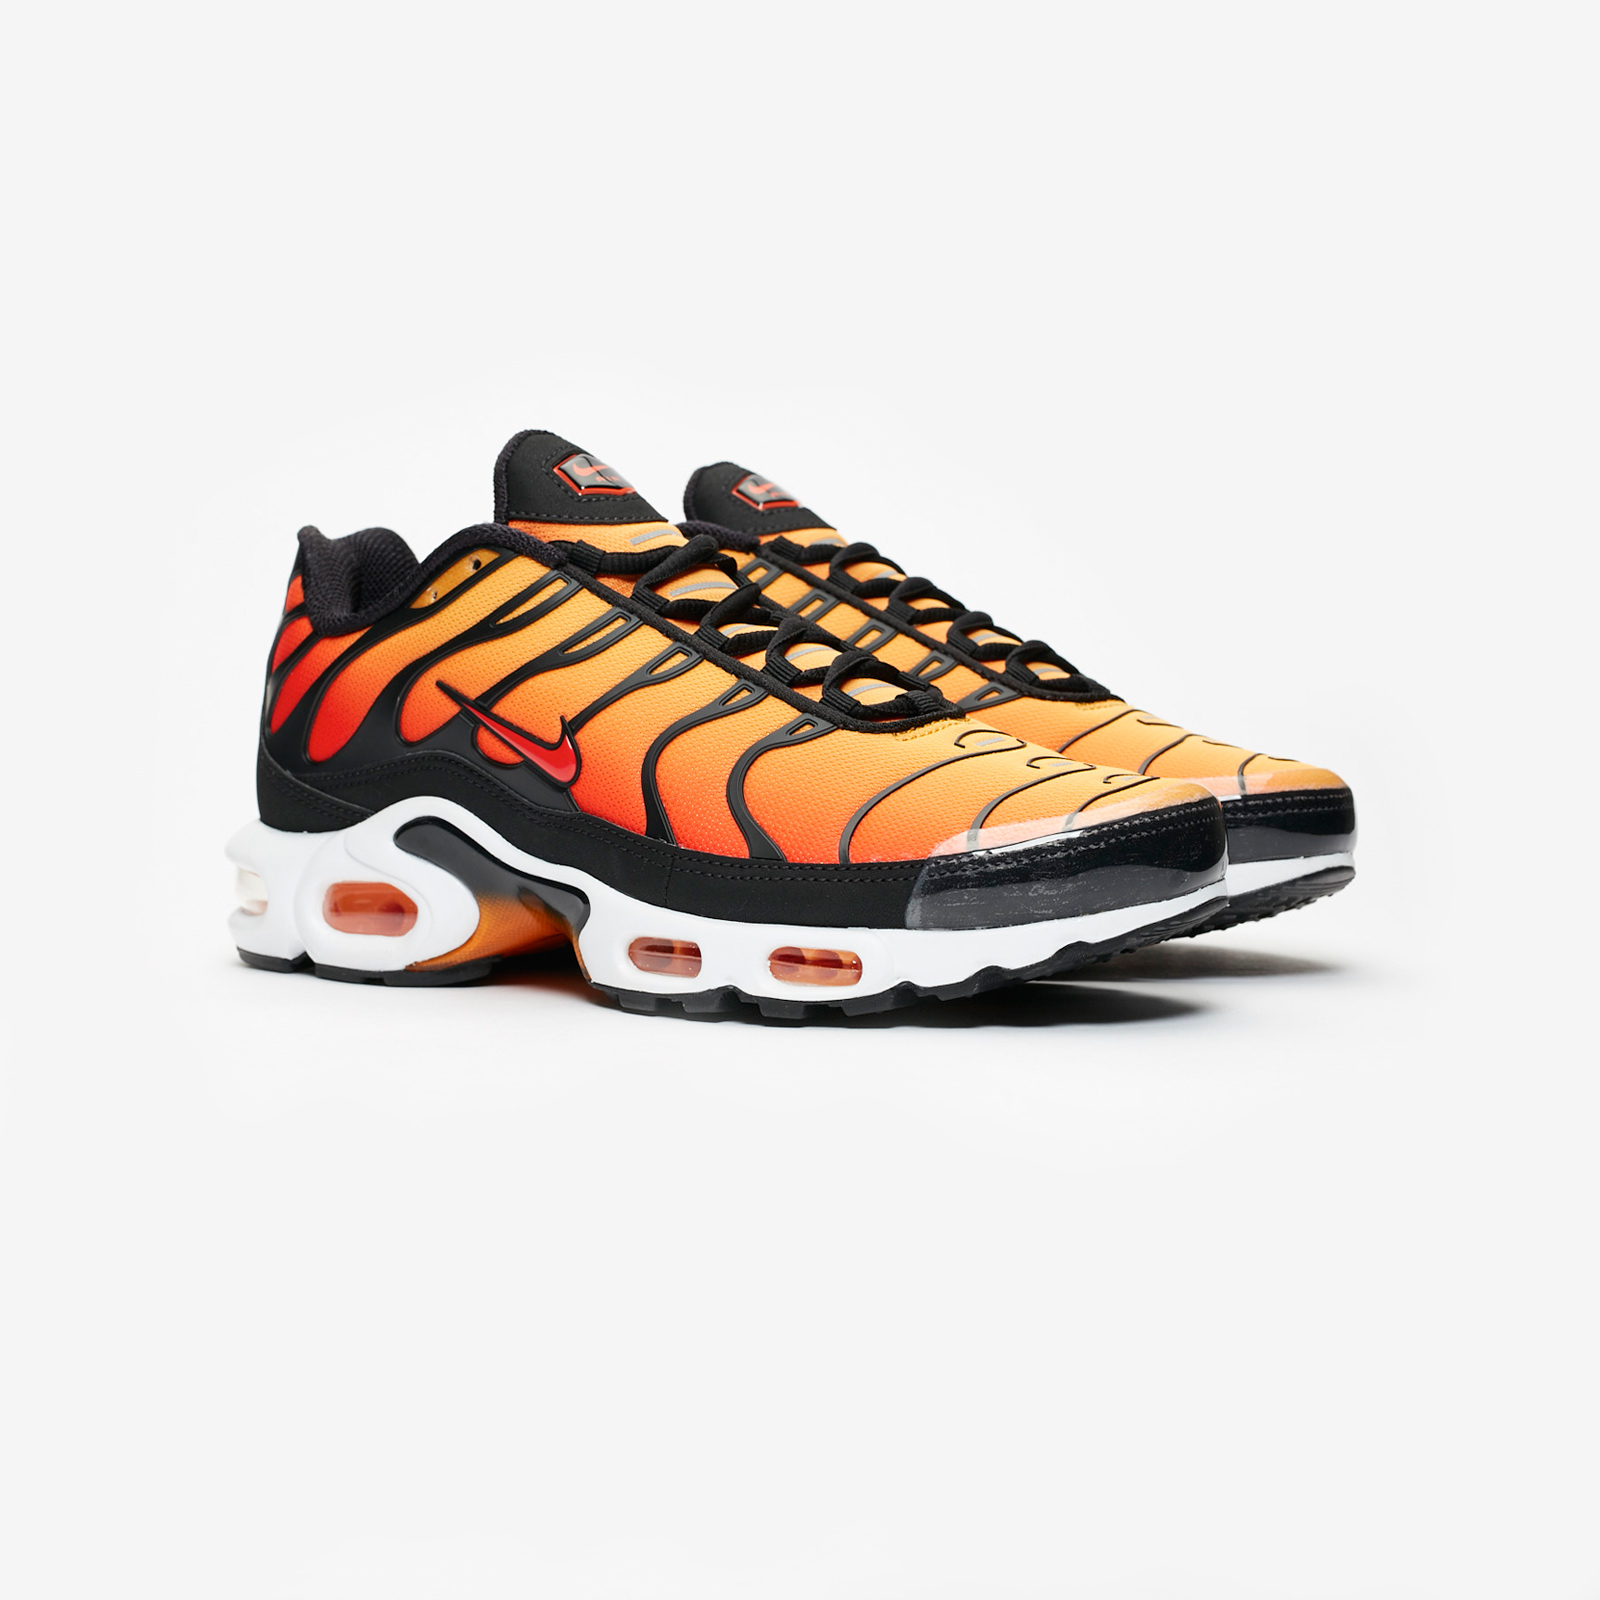 the latest 7a901 5be23 Nike Sportswear Air Max Plus OG